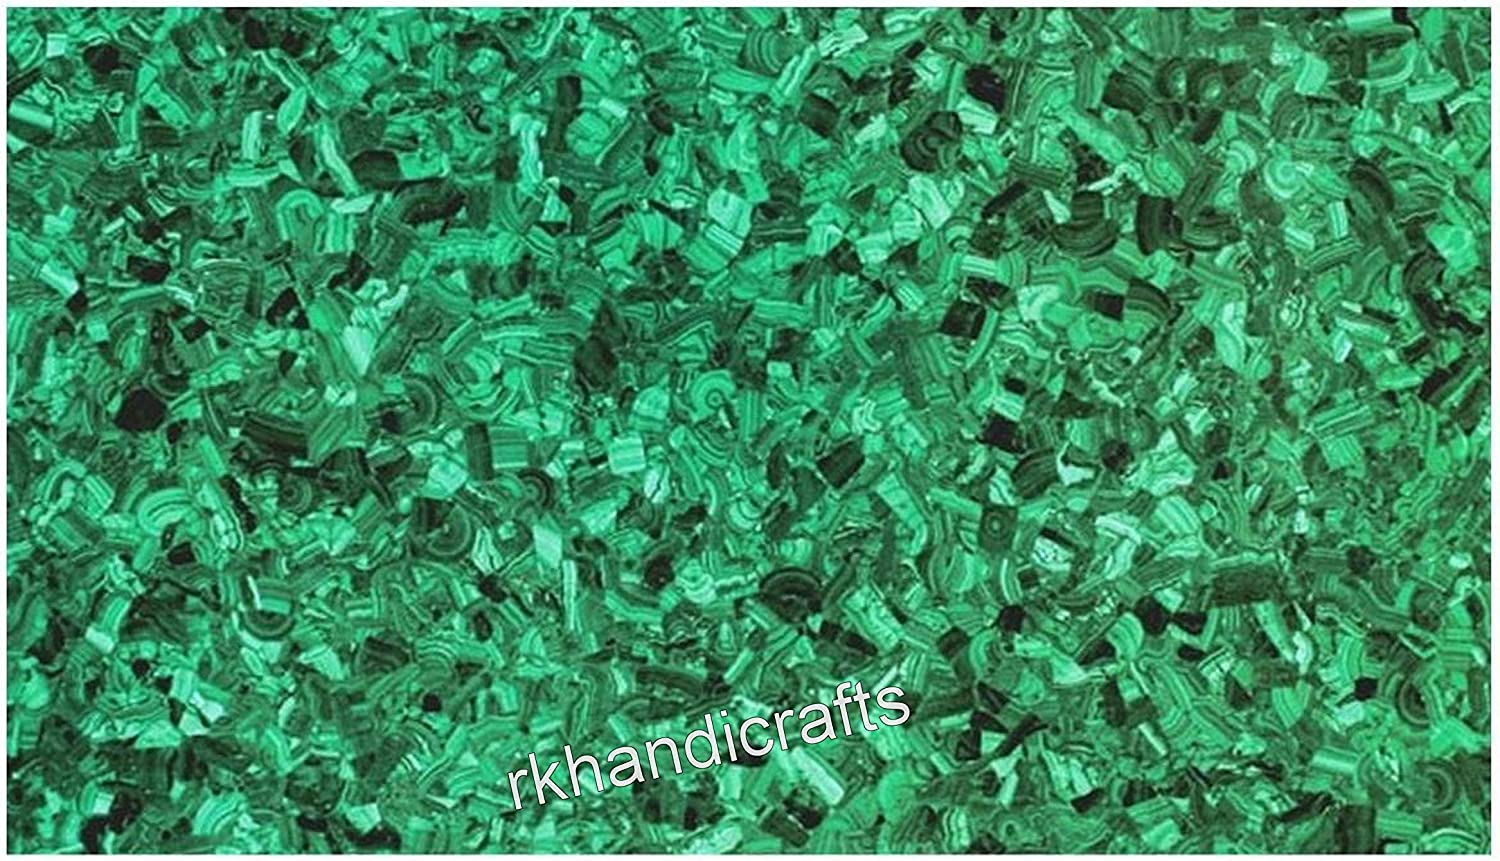 24 Inches x 36 Inches Marble Sofa Table Top Rectangle Shape at Random Work with Malachite Gemstones, Assent Home Furniture